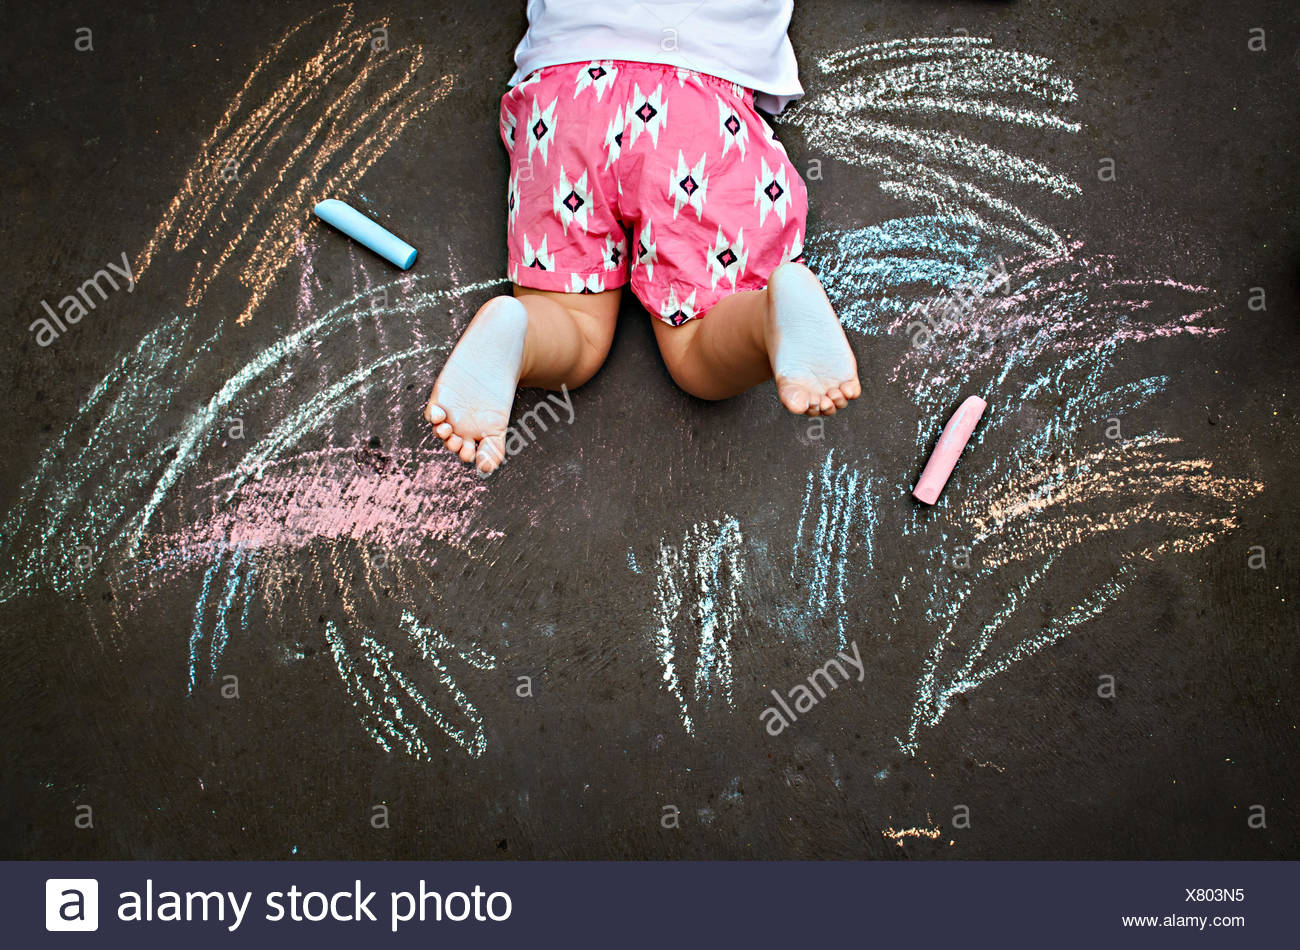 Overhead view of girl lying on ground drawing with chalk - Stock Image